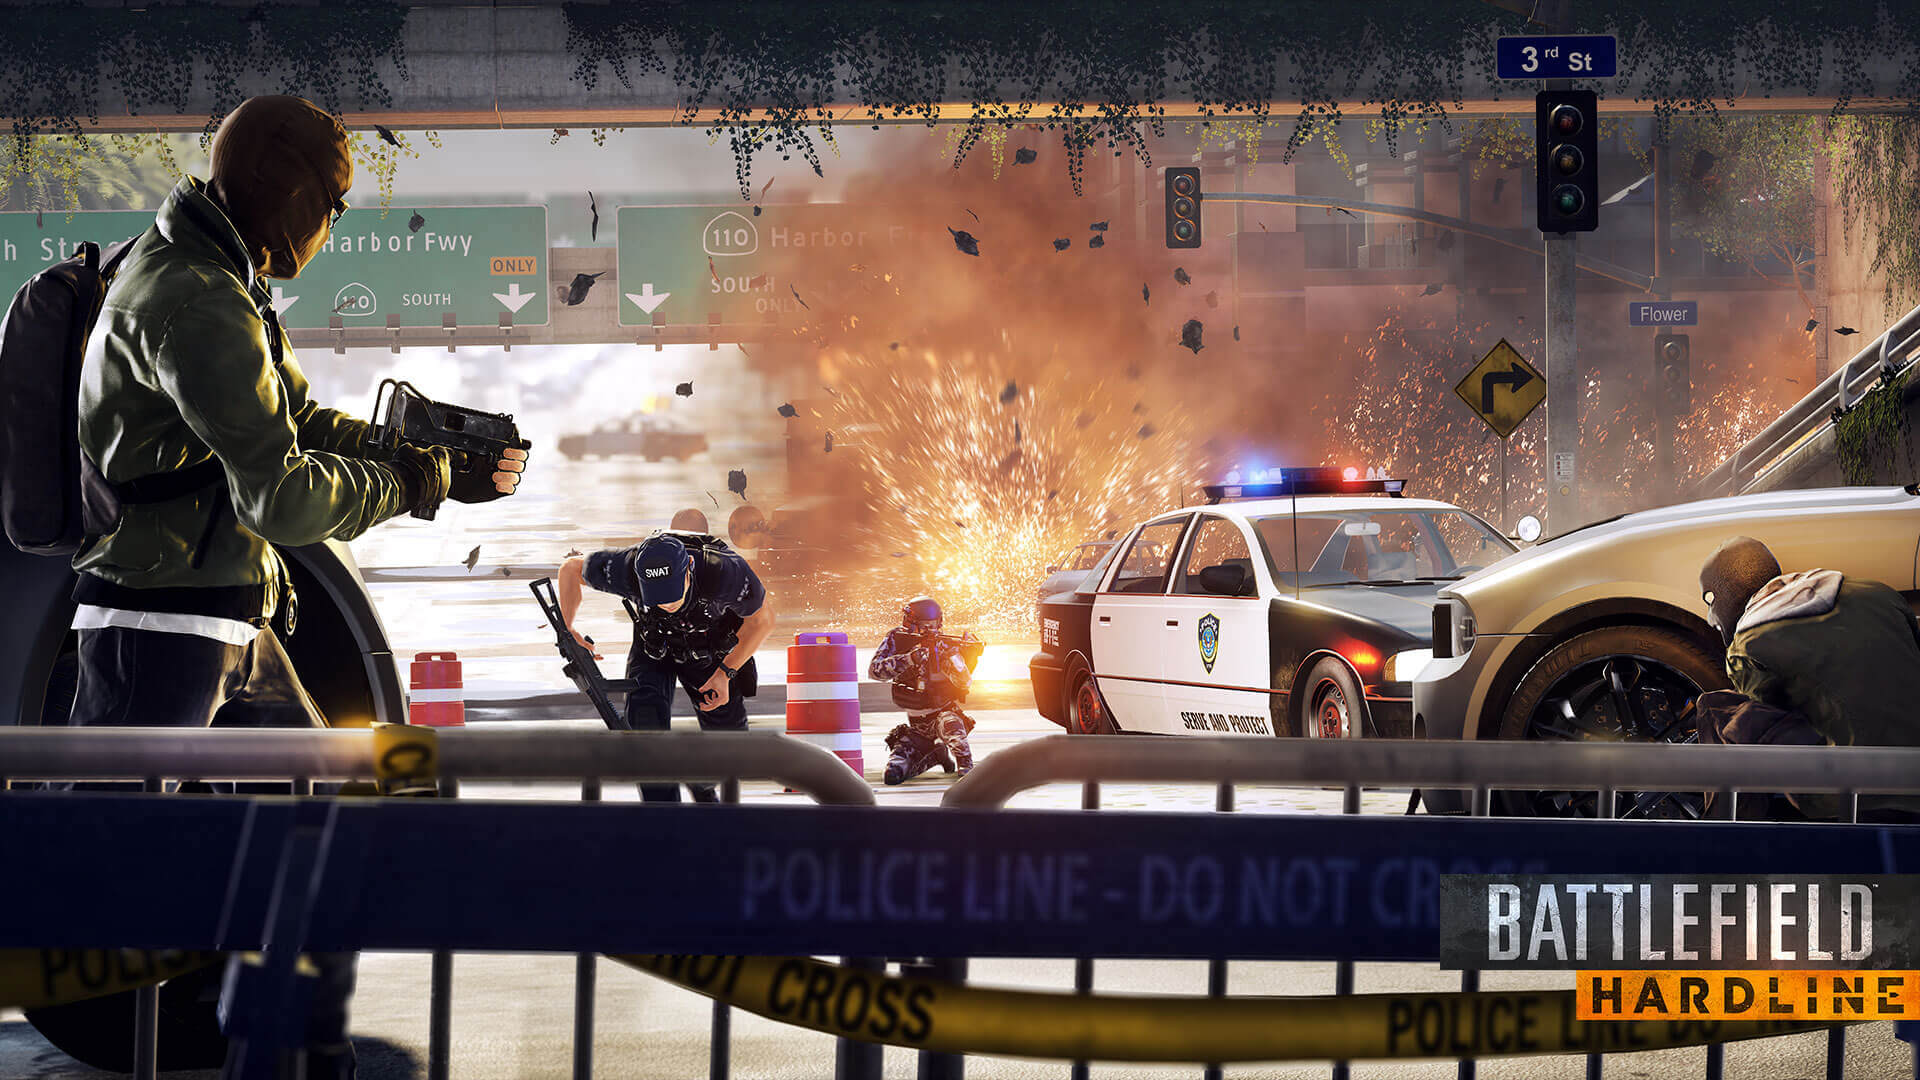 Battlefield Hardline - Live Action Trailer